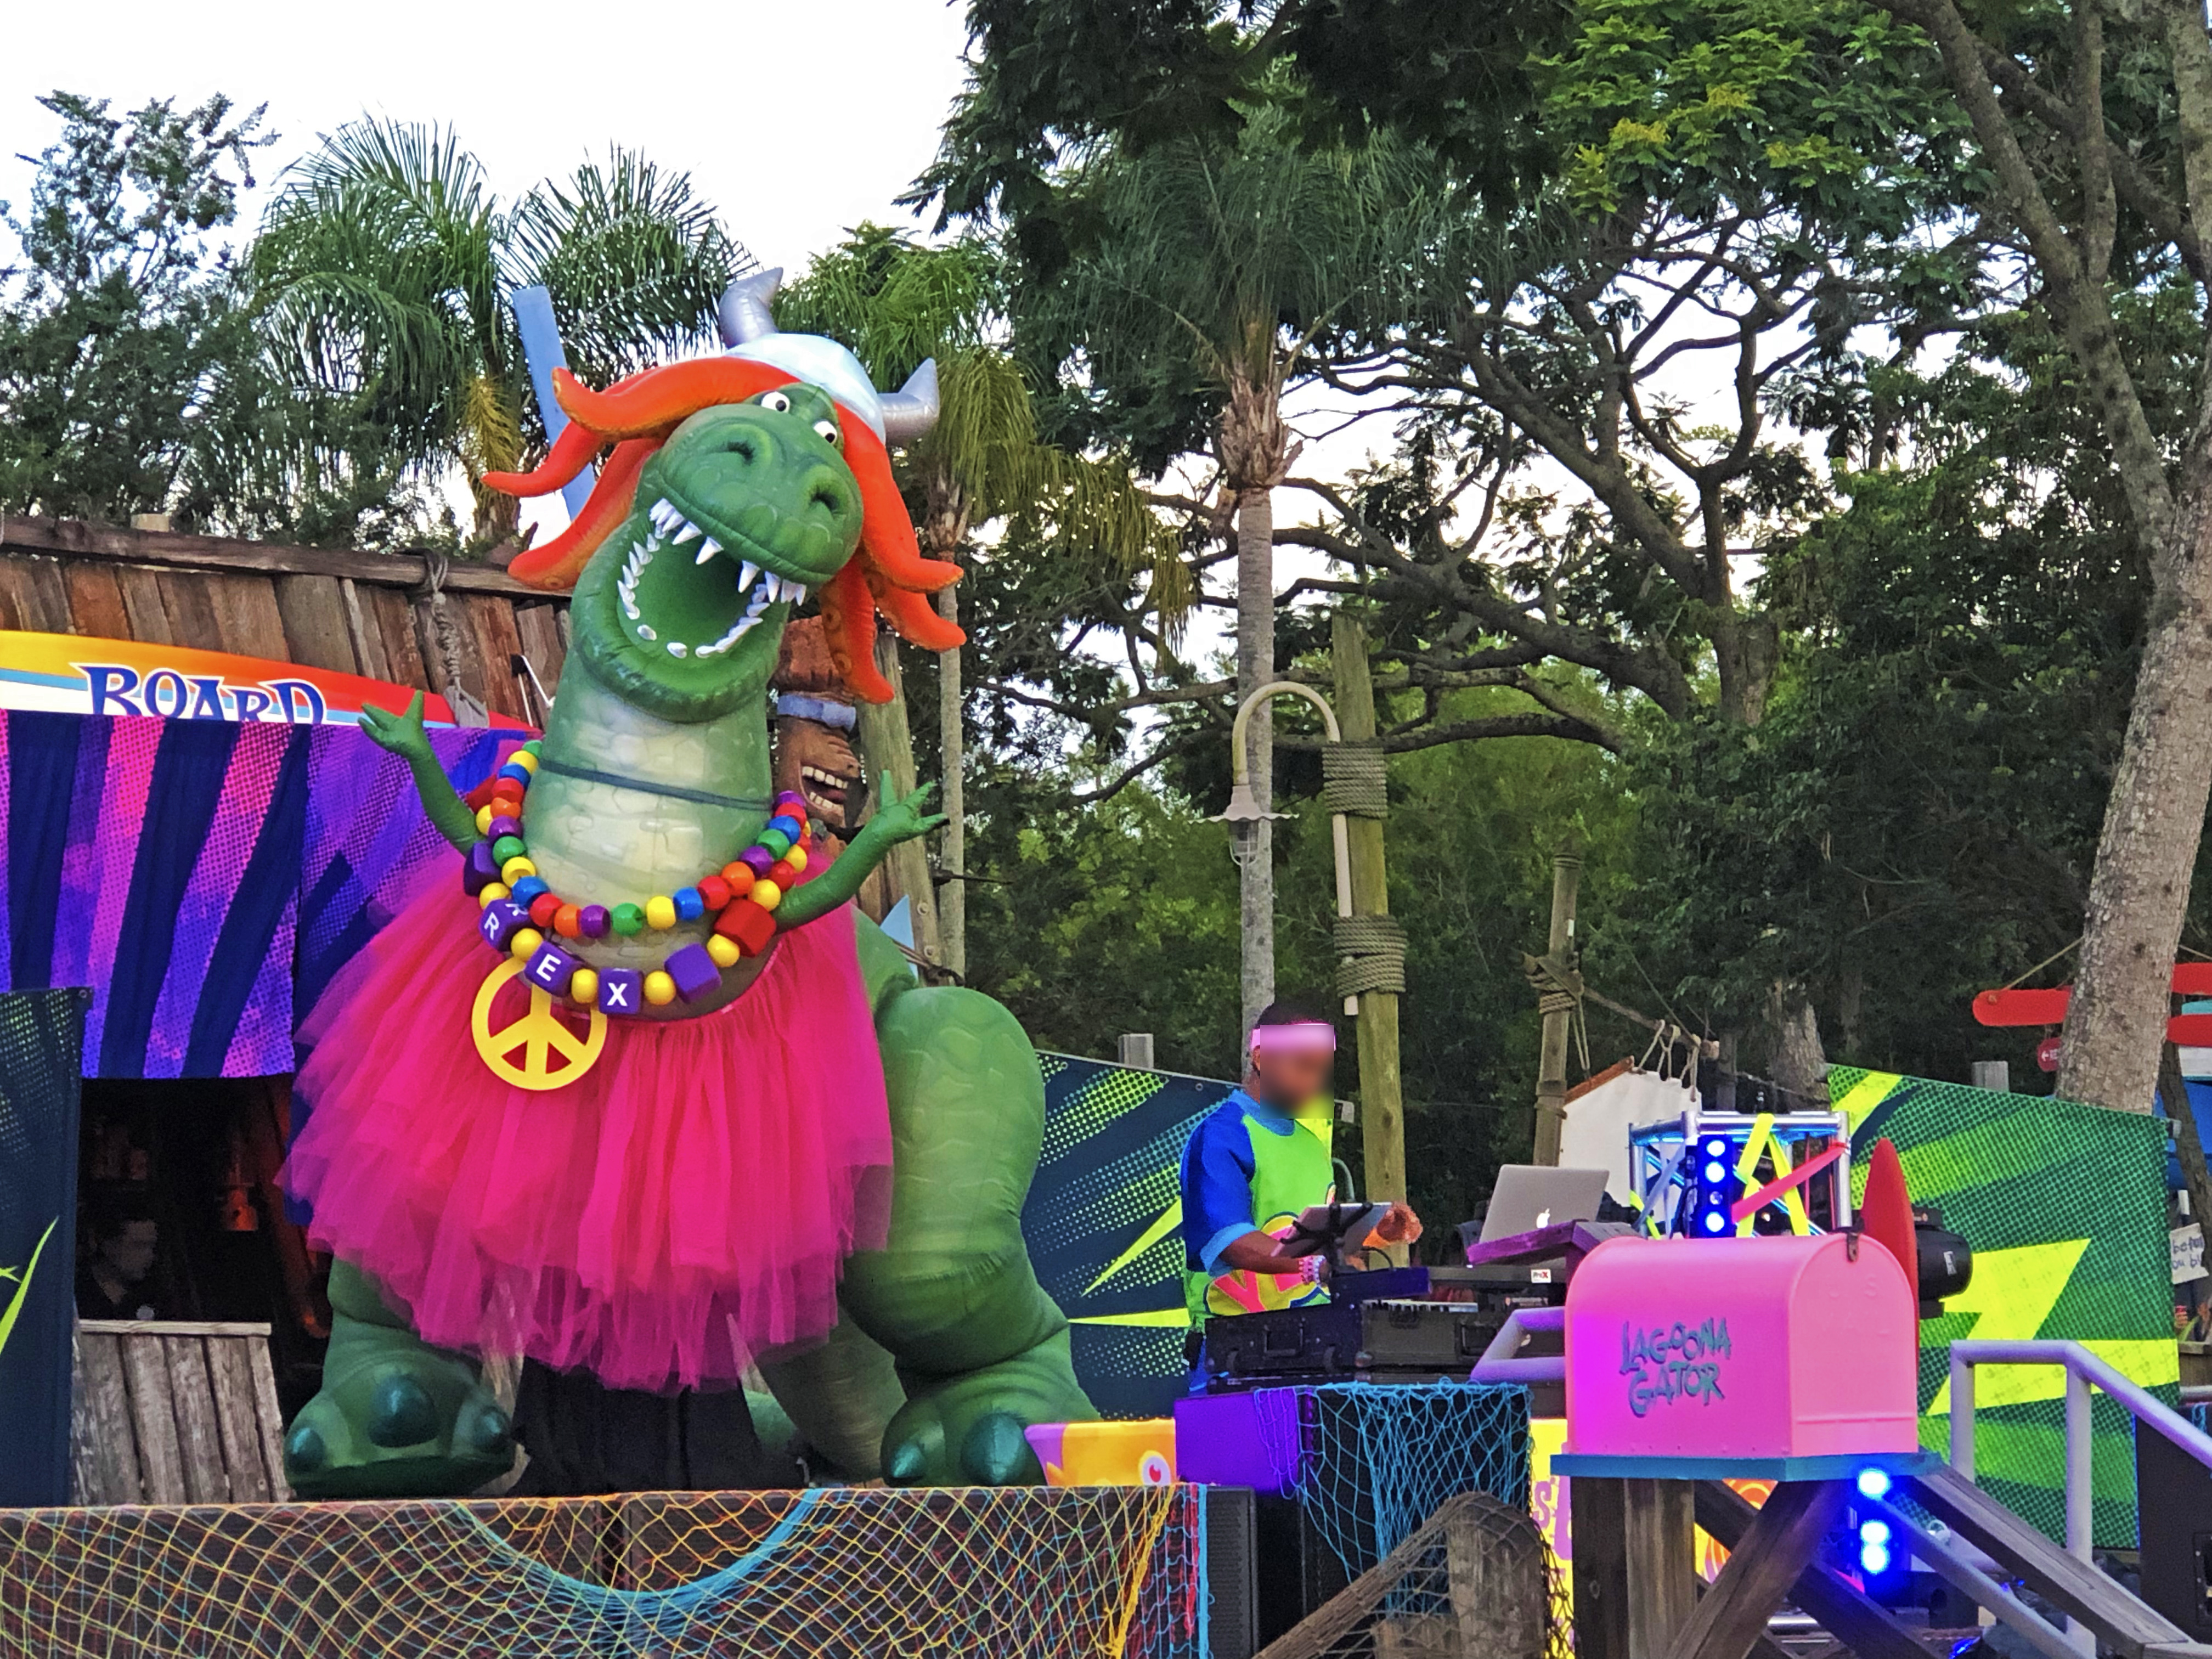 On stage, Toy Story character, Rex, is posed with his arms up in the air while wearing a pink tutu, some necklaces, and an orange wig and a silver horn metal helmet of sorts. During the daytime at Disney's Typhoon Lagoon for Disney's H2O Glow Nights.